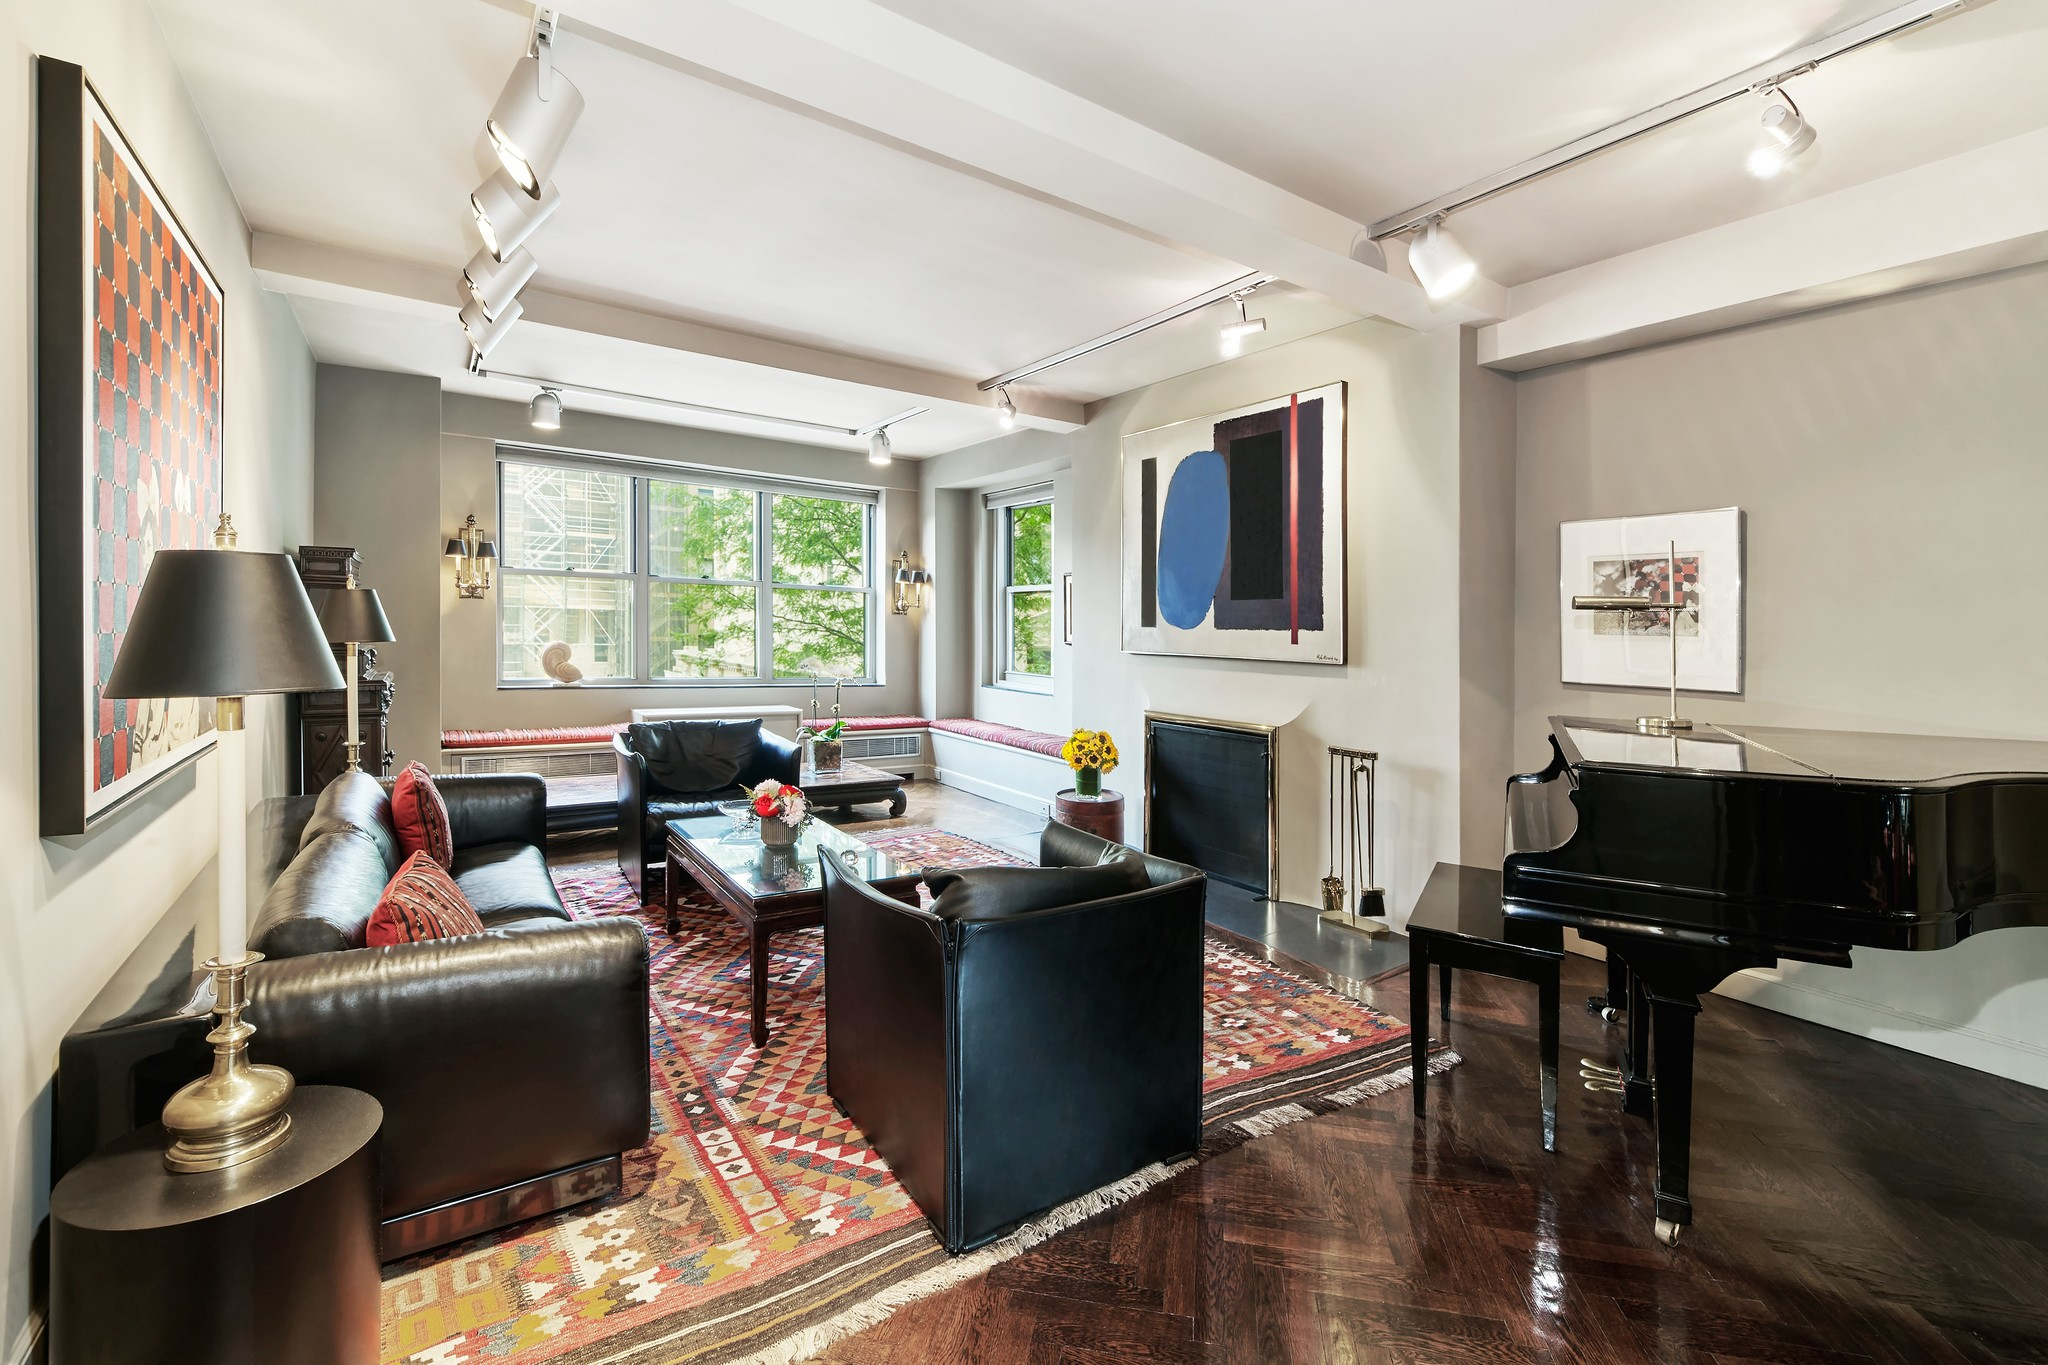 Chic 2-Bedroom House In Upper East Side